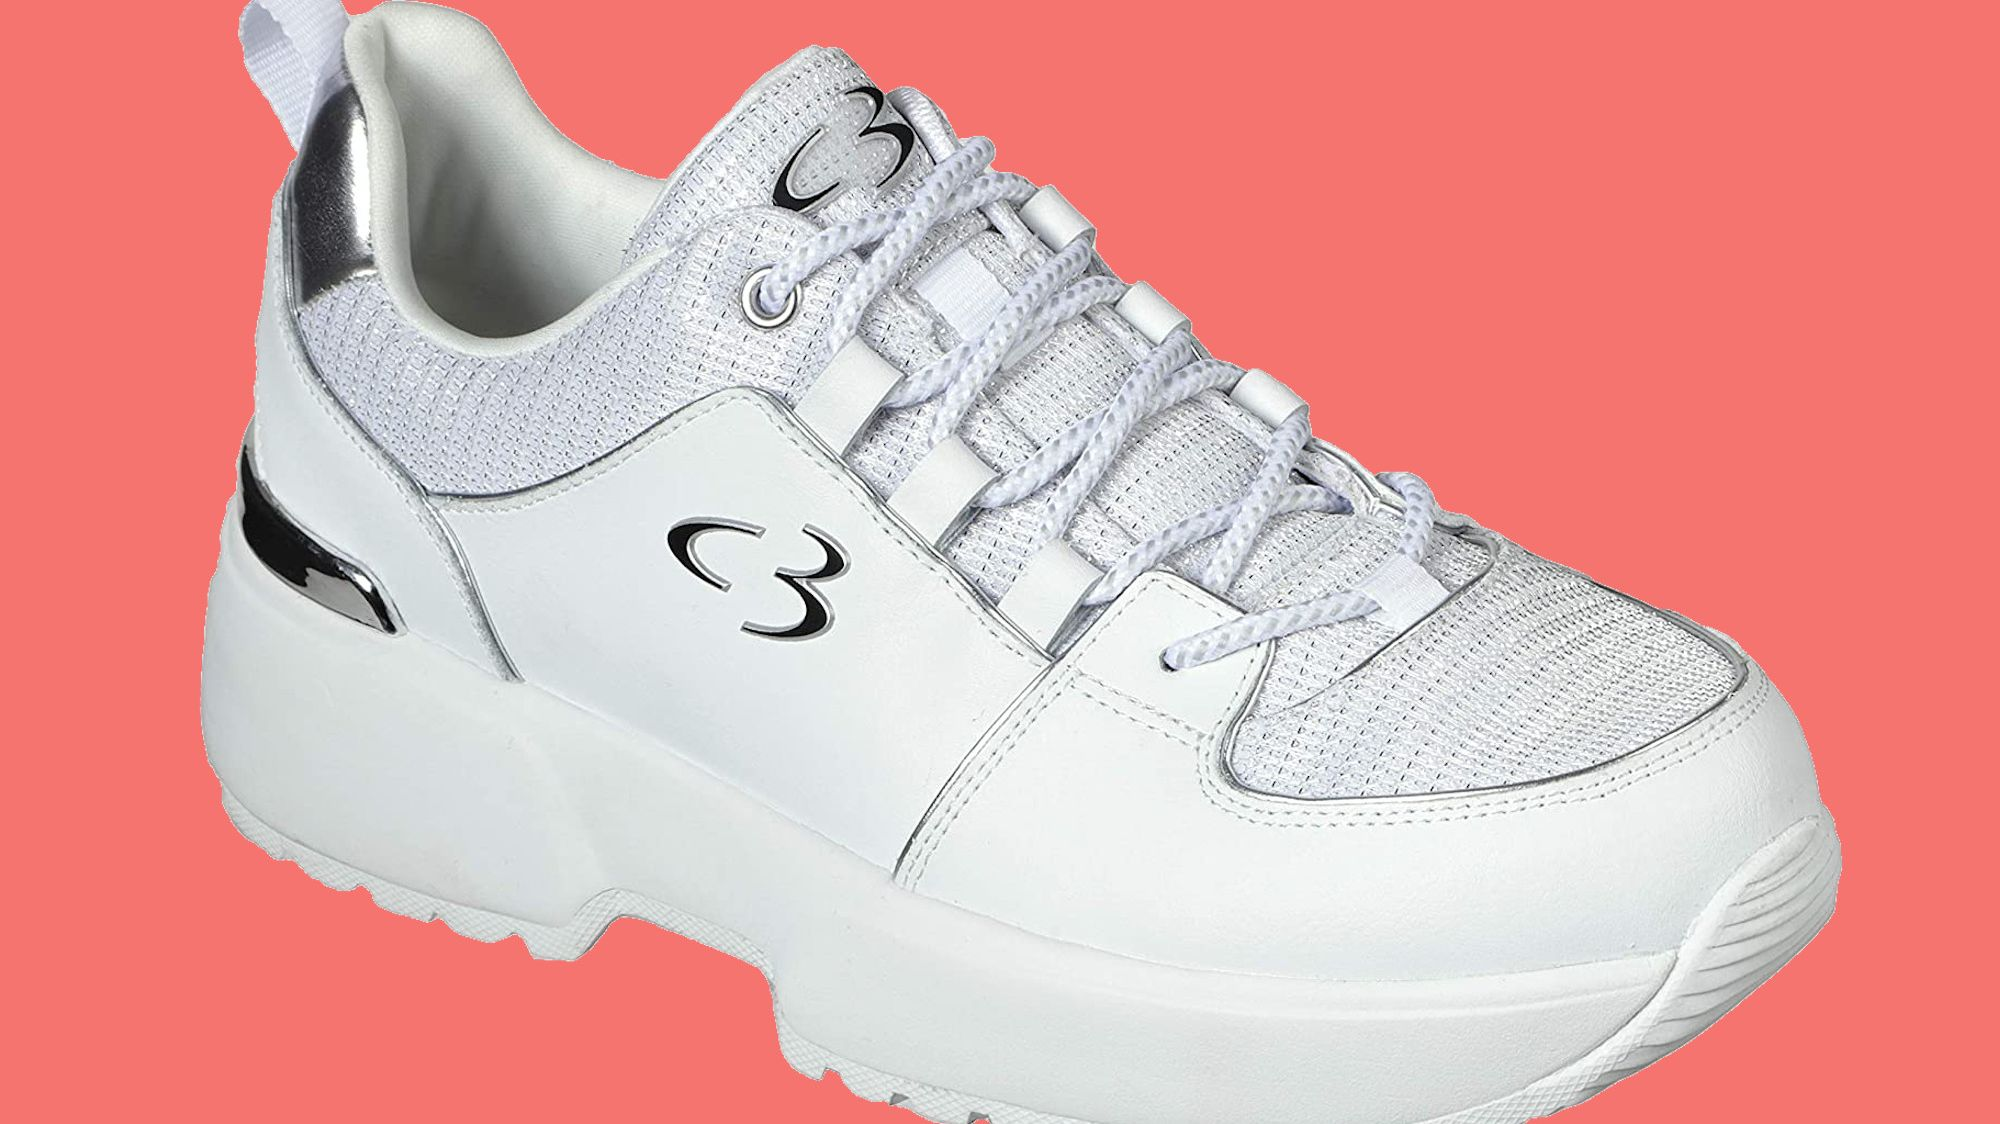 Concept 3 by Skechers at Amazon